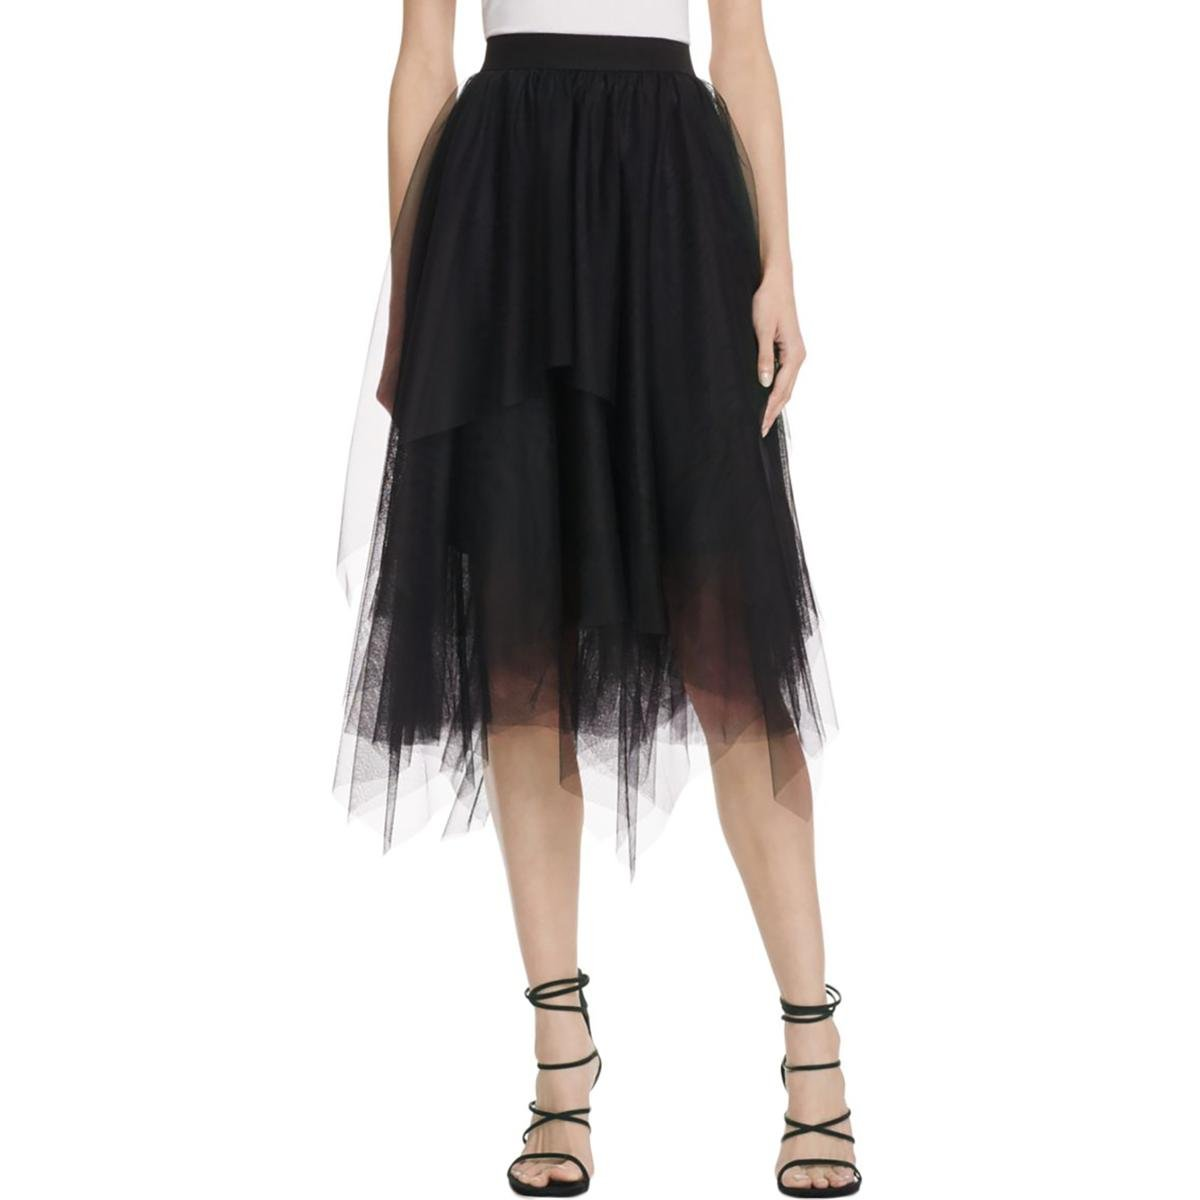 Bailey 44 Womens Tiered Asymmetric A-Line Skirt Black XS by Bailey 44